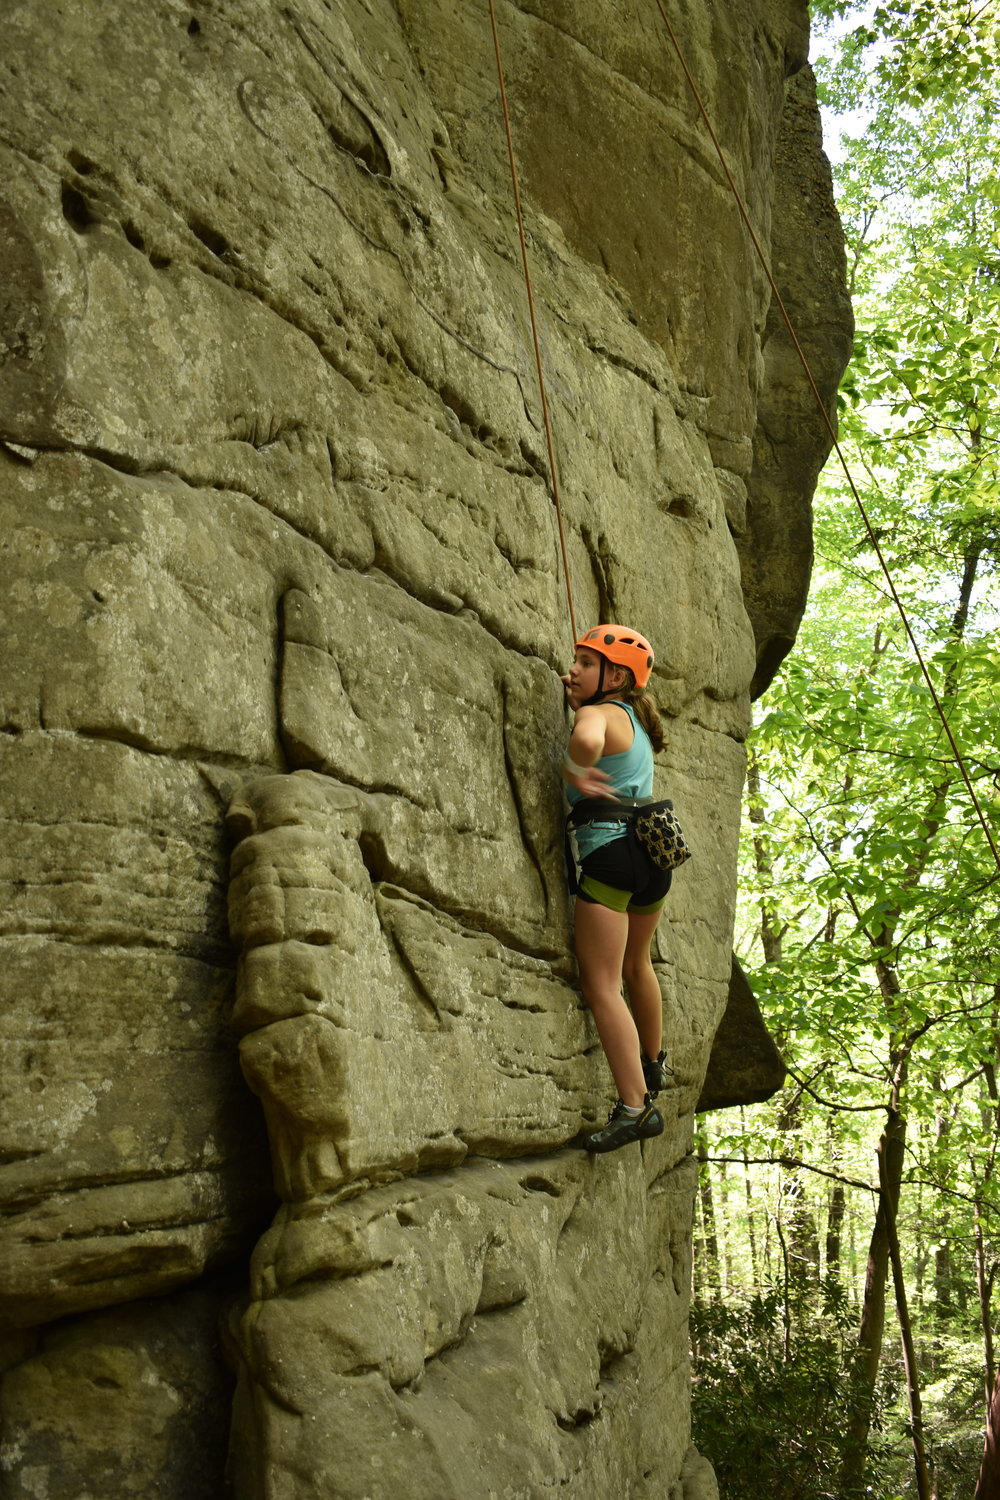 Full Day Guided - 3-hour drive timeWest Virginia! Wild and Wonderful! Come discover the iconic New River Gorge climbing area and climb one some of the best rock in the country! Whether you are looking to focus on your climbing, technical skills, or a little bit of both - this full day trip is for you!Pricing: $60/deposit required to secure spot (this will go toward final cost)Participants:1 = $160/member ; $180/non-member2 = $130/member ; $150/non-member3 = $115/member ; $130/non-member4 = $100/member ; $115/non-member5 = $80/member ; $100/non-member6 = $60/member ; $80/non-member6 or more? Call for special pricing.